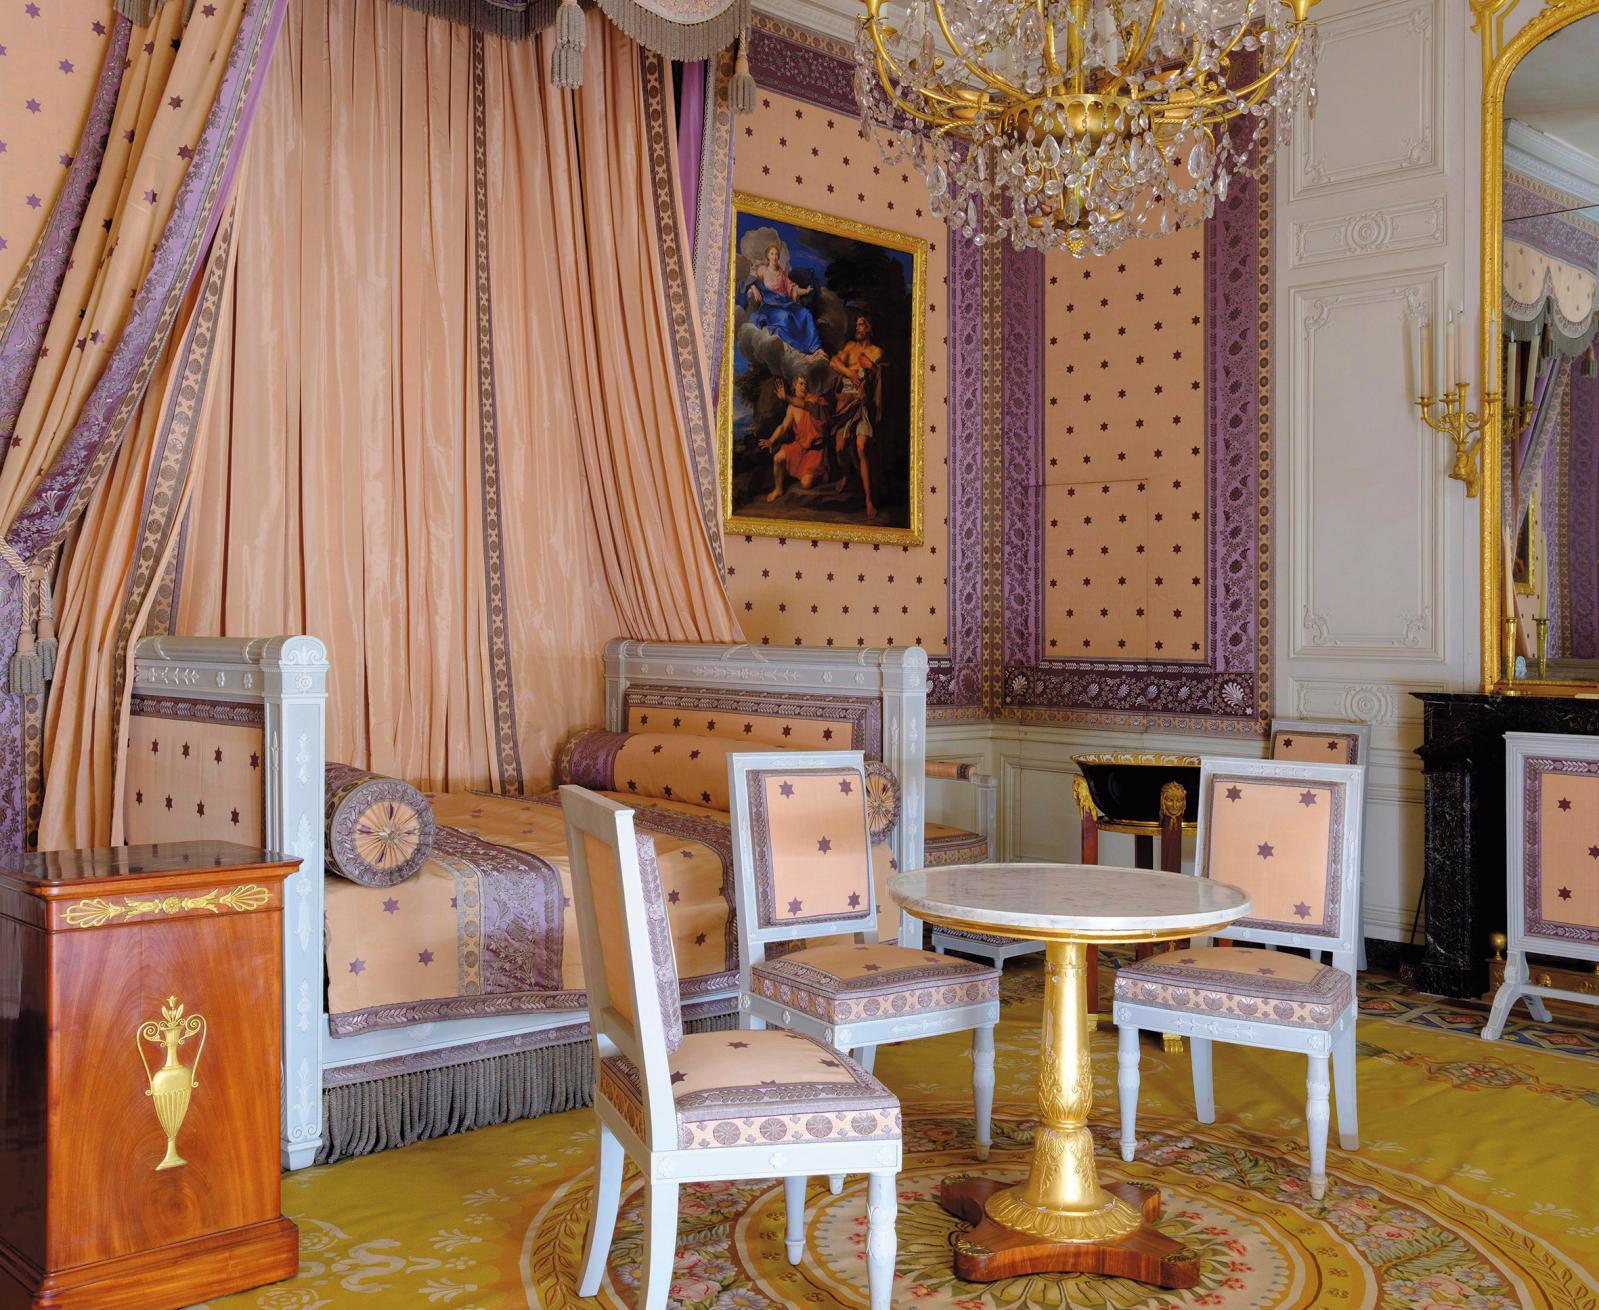 The Emperor's bedchamber in the Petit Appartement at the Grand Trianon.© château de Versailles/Thomas Garnier